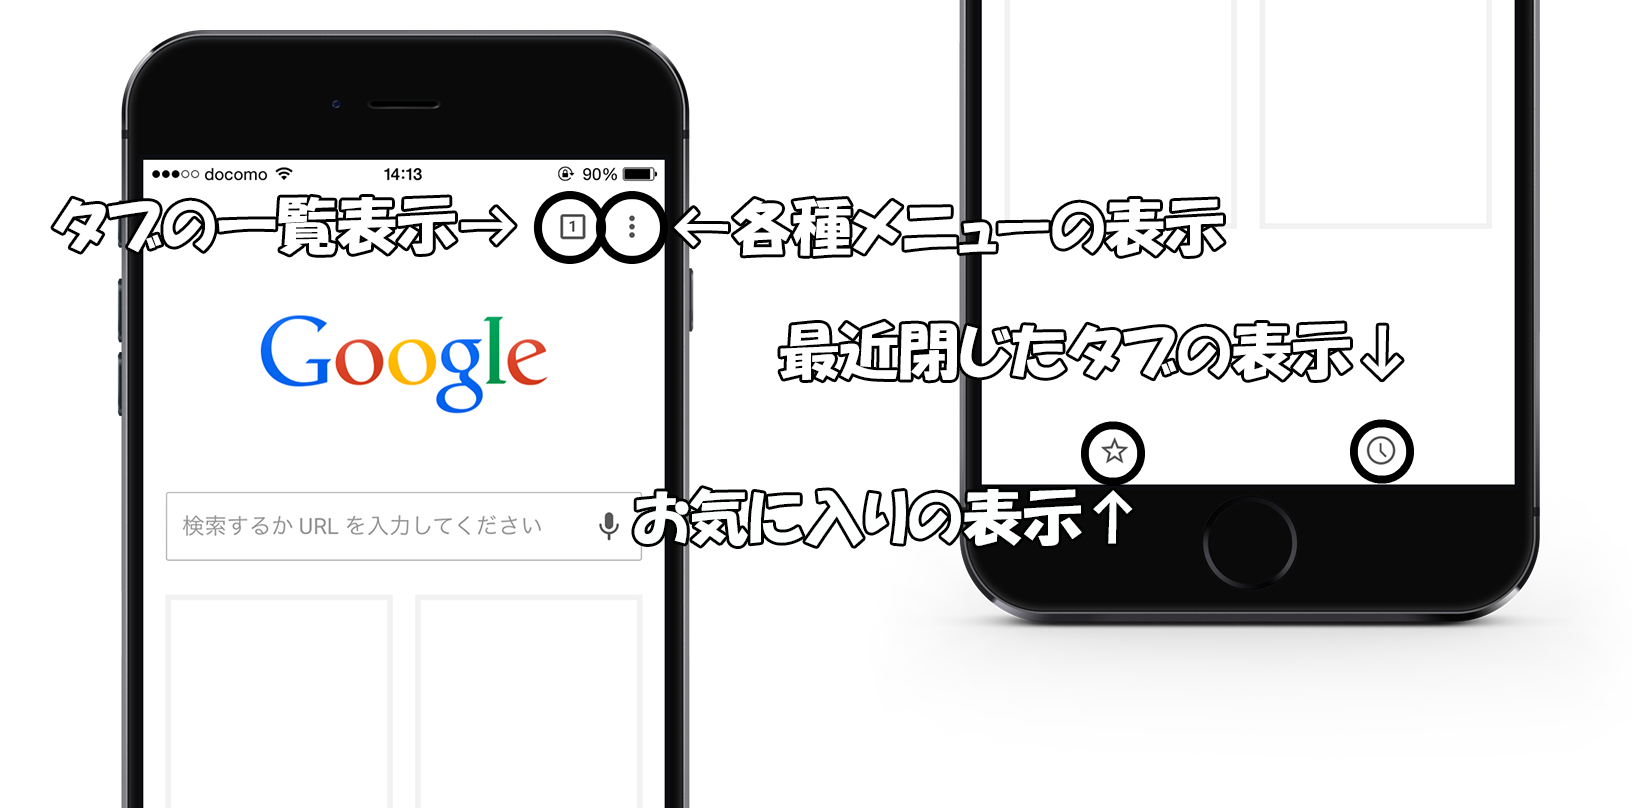 mobile_chrome_interface